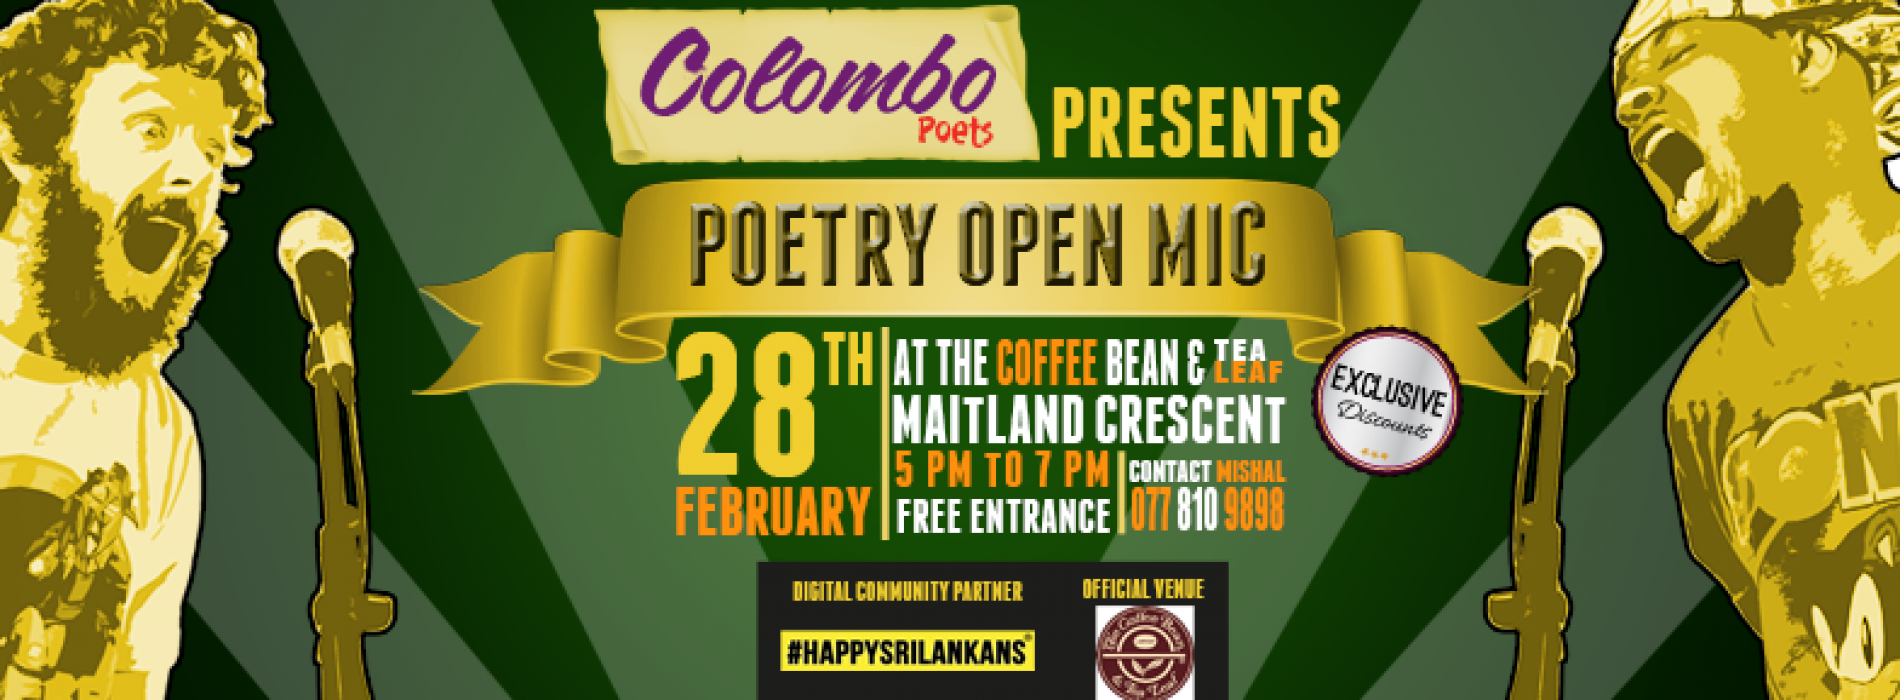 Colombo Poets Presents: Poetry Open Mic February Edition!